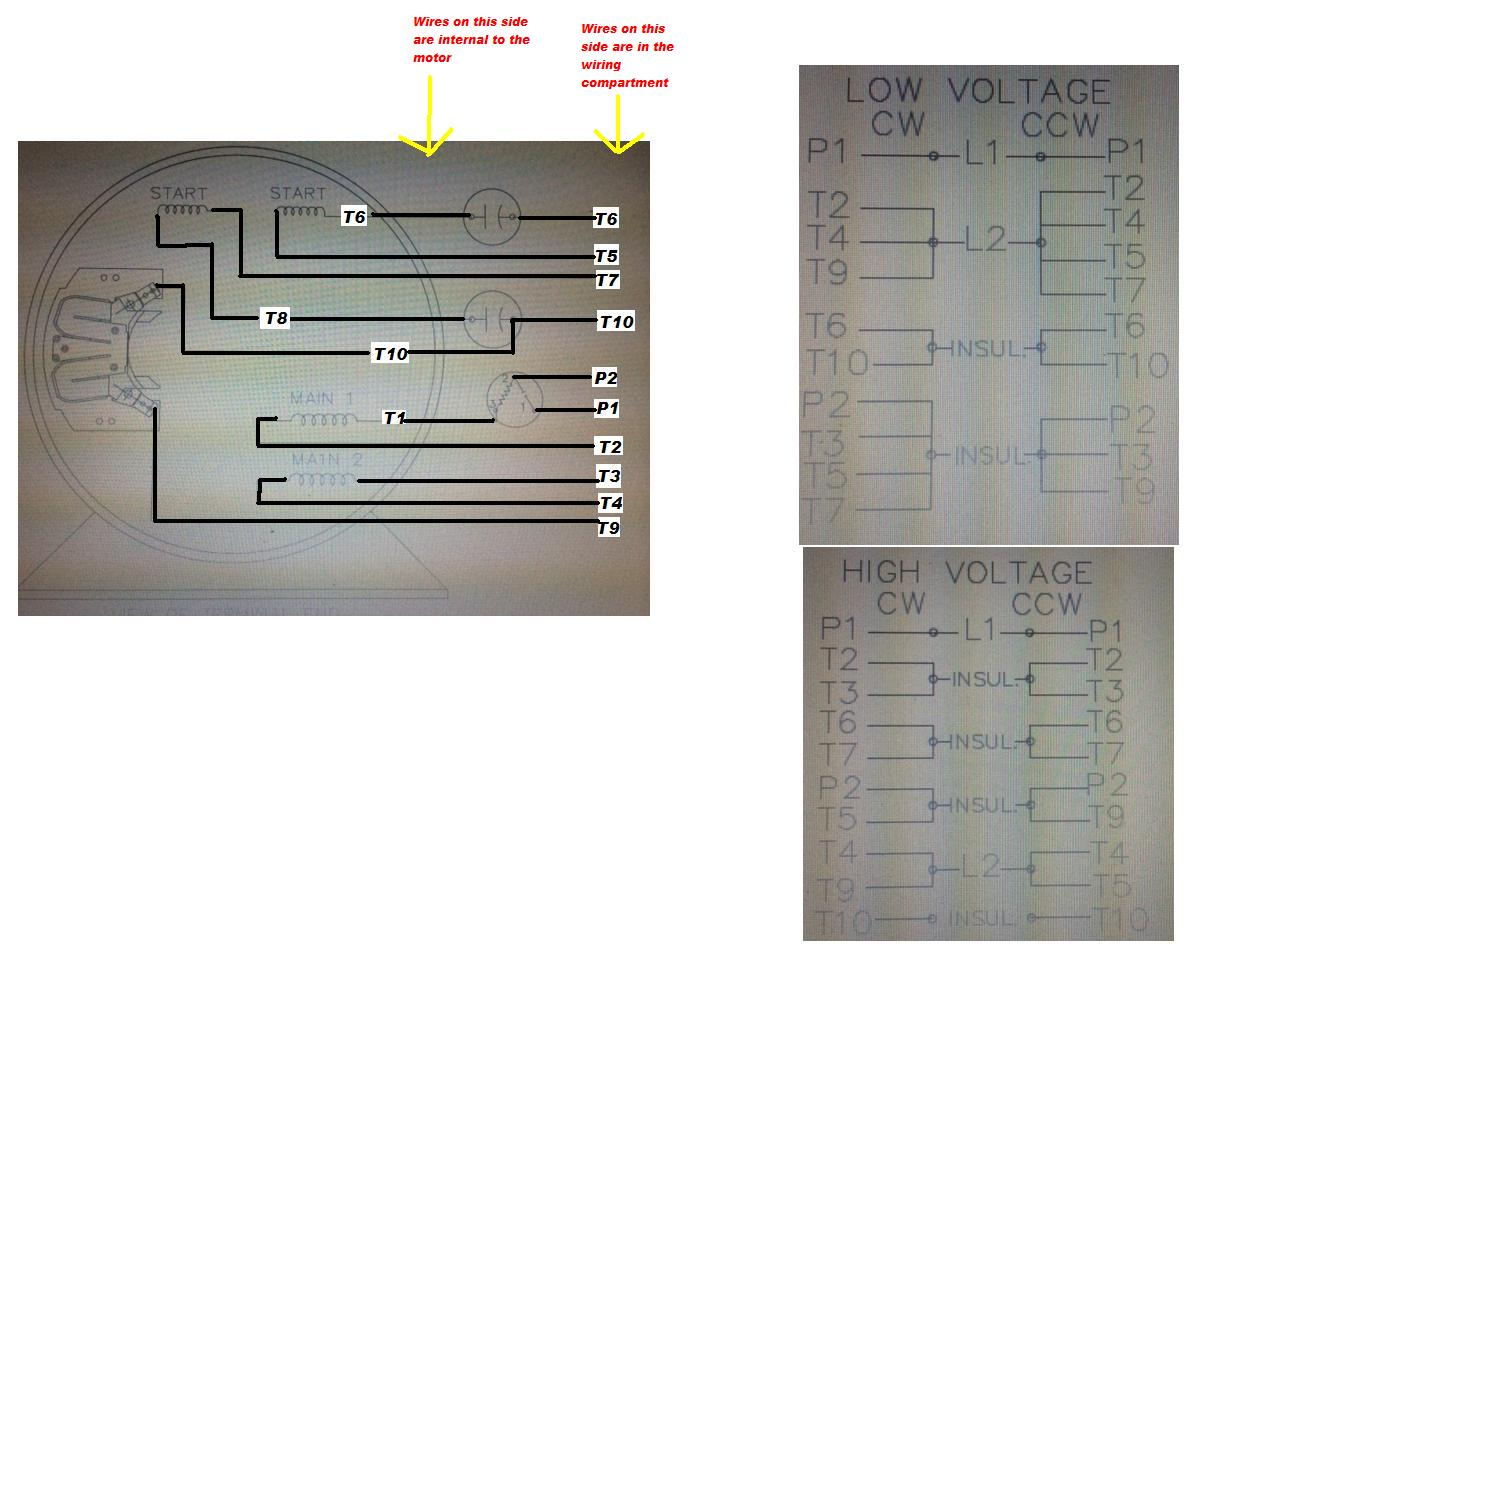 Electric Motor Wiring Color Code Dayton Cw Ccw Diagram Solidfonts